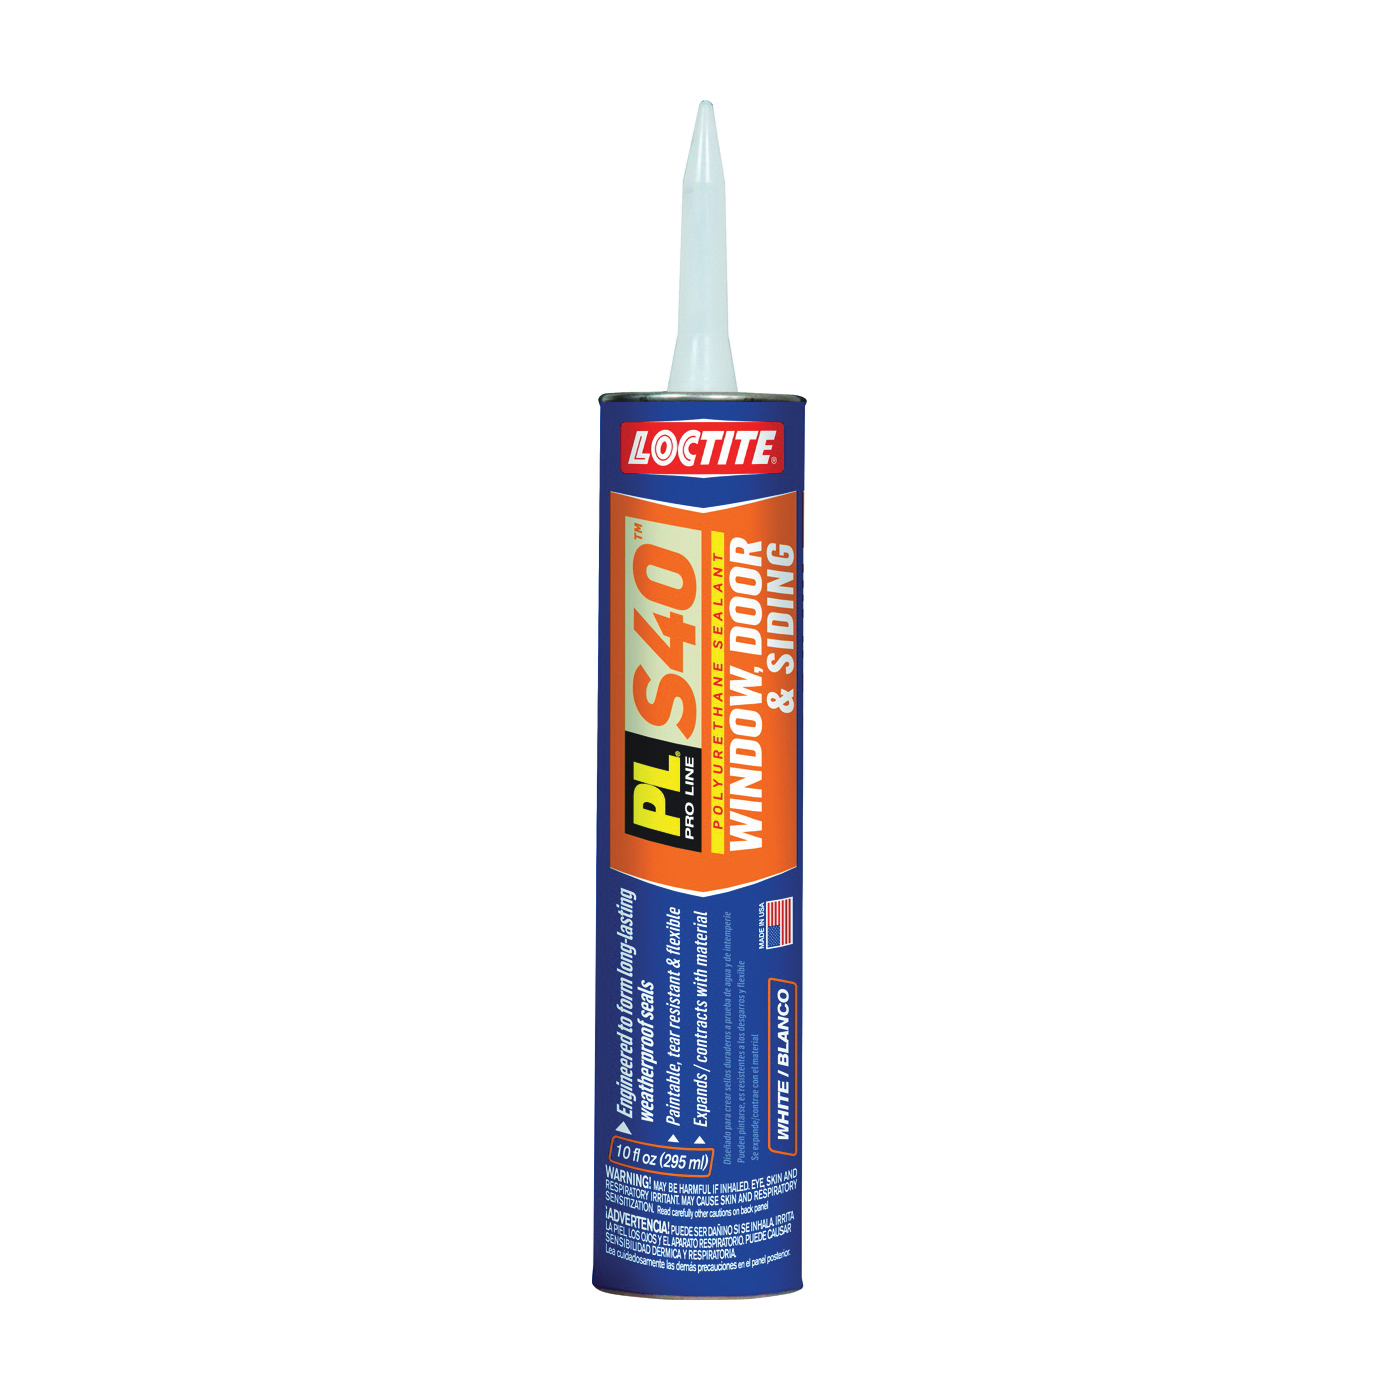 Picture of Loctite 1618182 Polyurethane Sealant, White, 7 Days Curing, 20 to 120 deg F, 10 oz Package, Cartridge